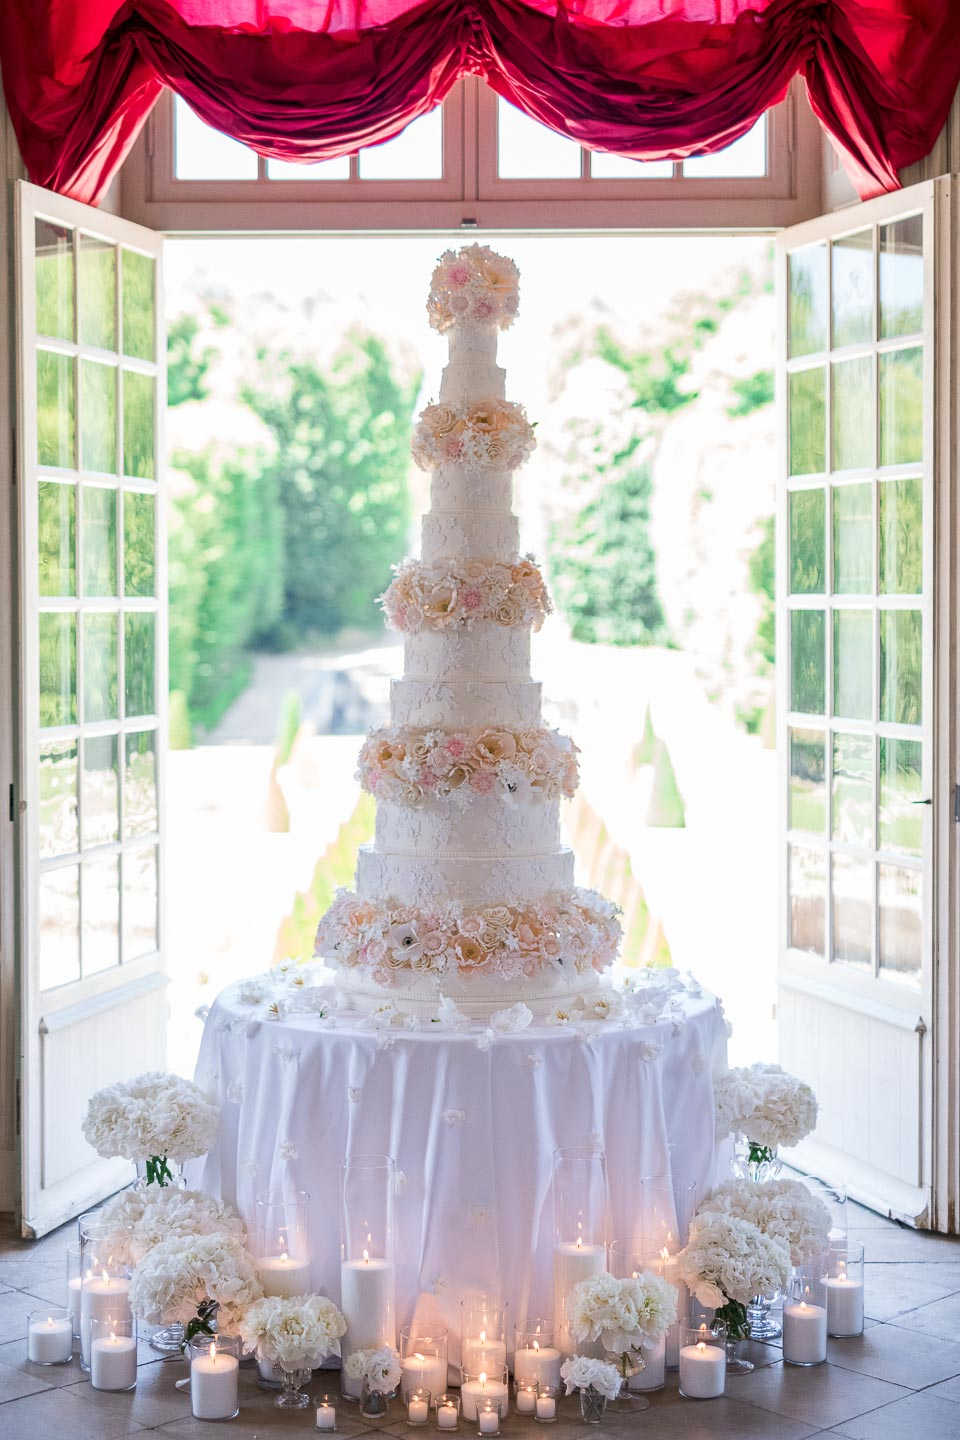 chateau de villette france luxury weddings french style chateau wedding ideas cake